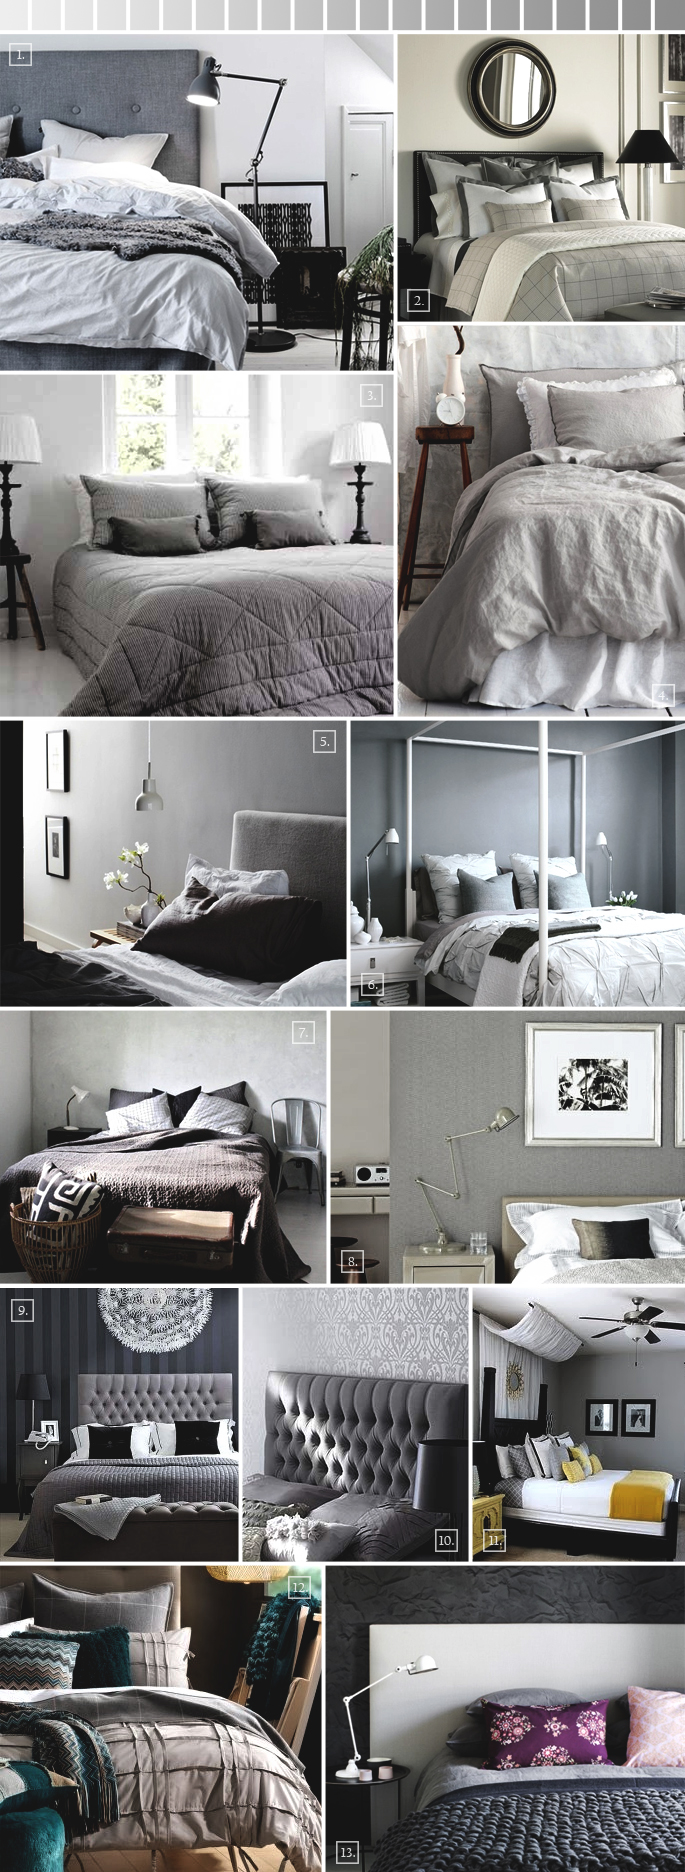 grey bedroom ideas decorating tips and design pictures home tree